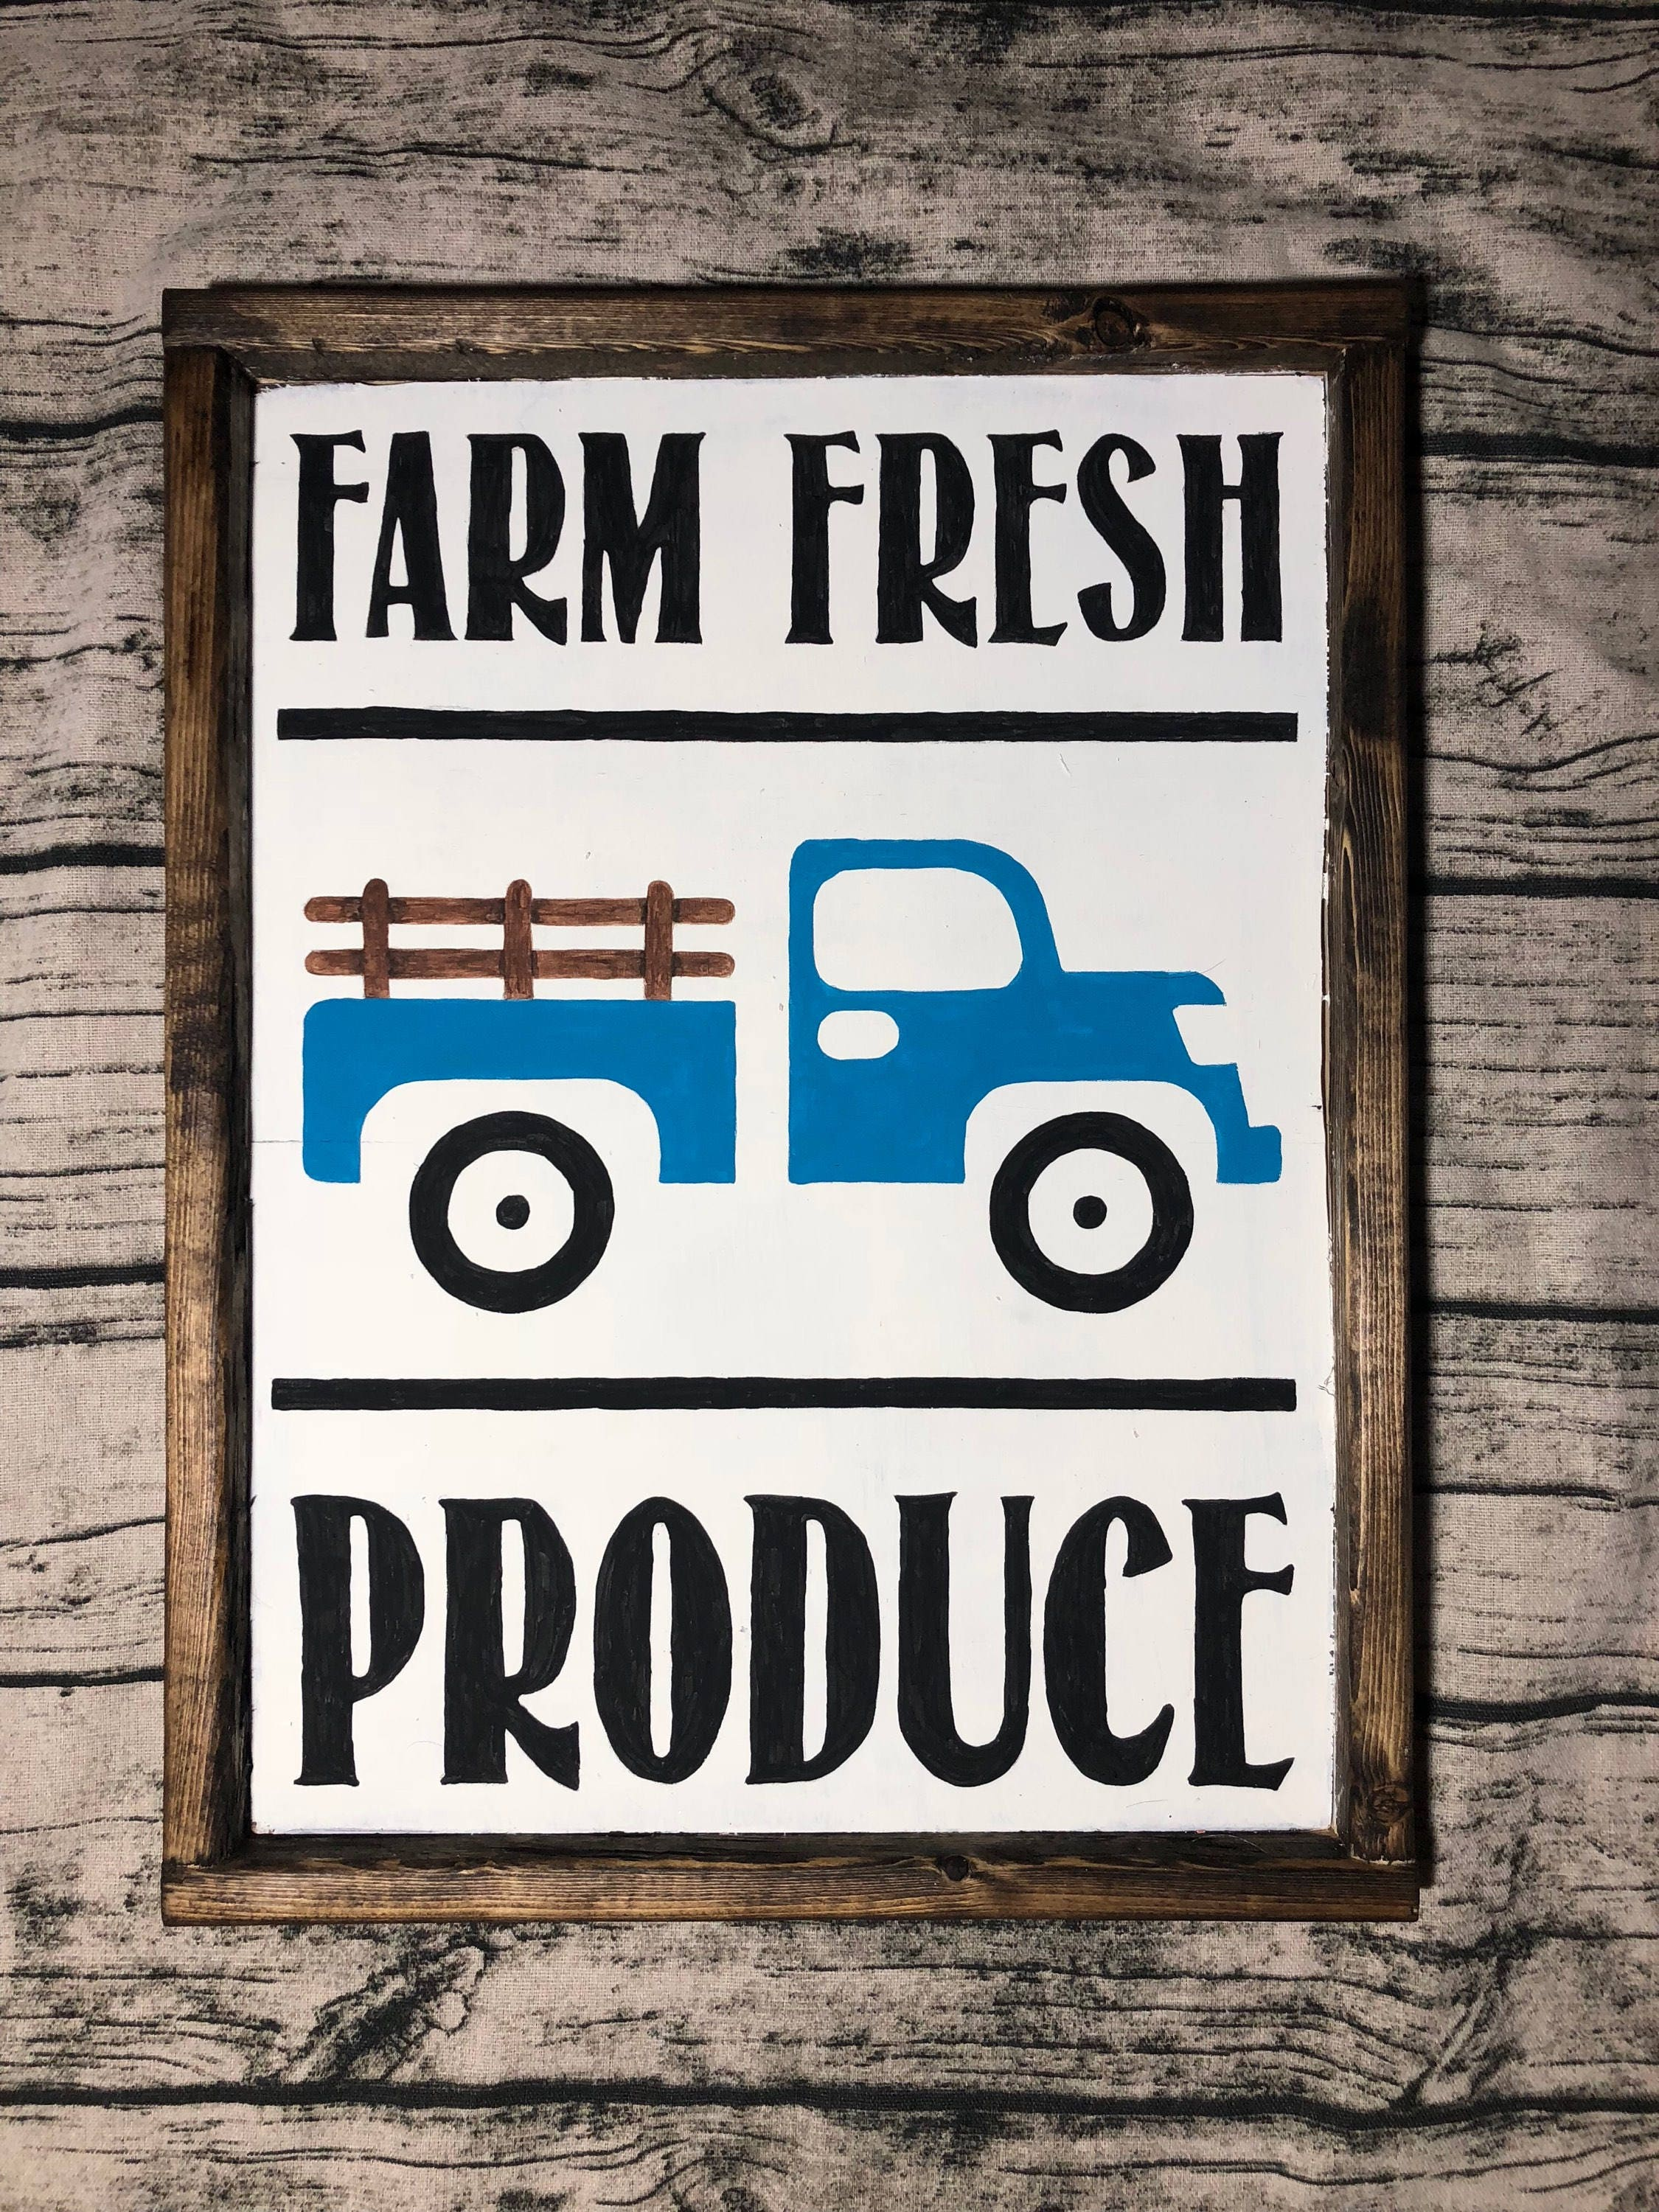 Farm Fresh Produce, Farmhouse, Rustic, Kitchen Sign, Dining Room,  Housewarming, Gift Ideas, Chrismtas, Mothers Day, Home Decor, Farm